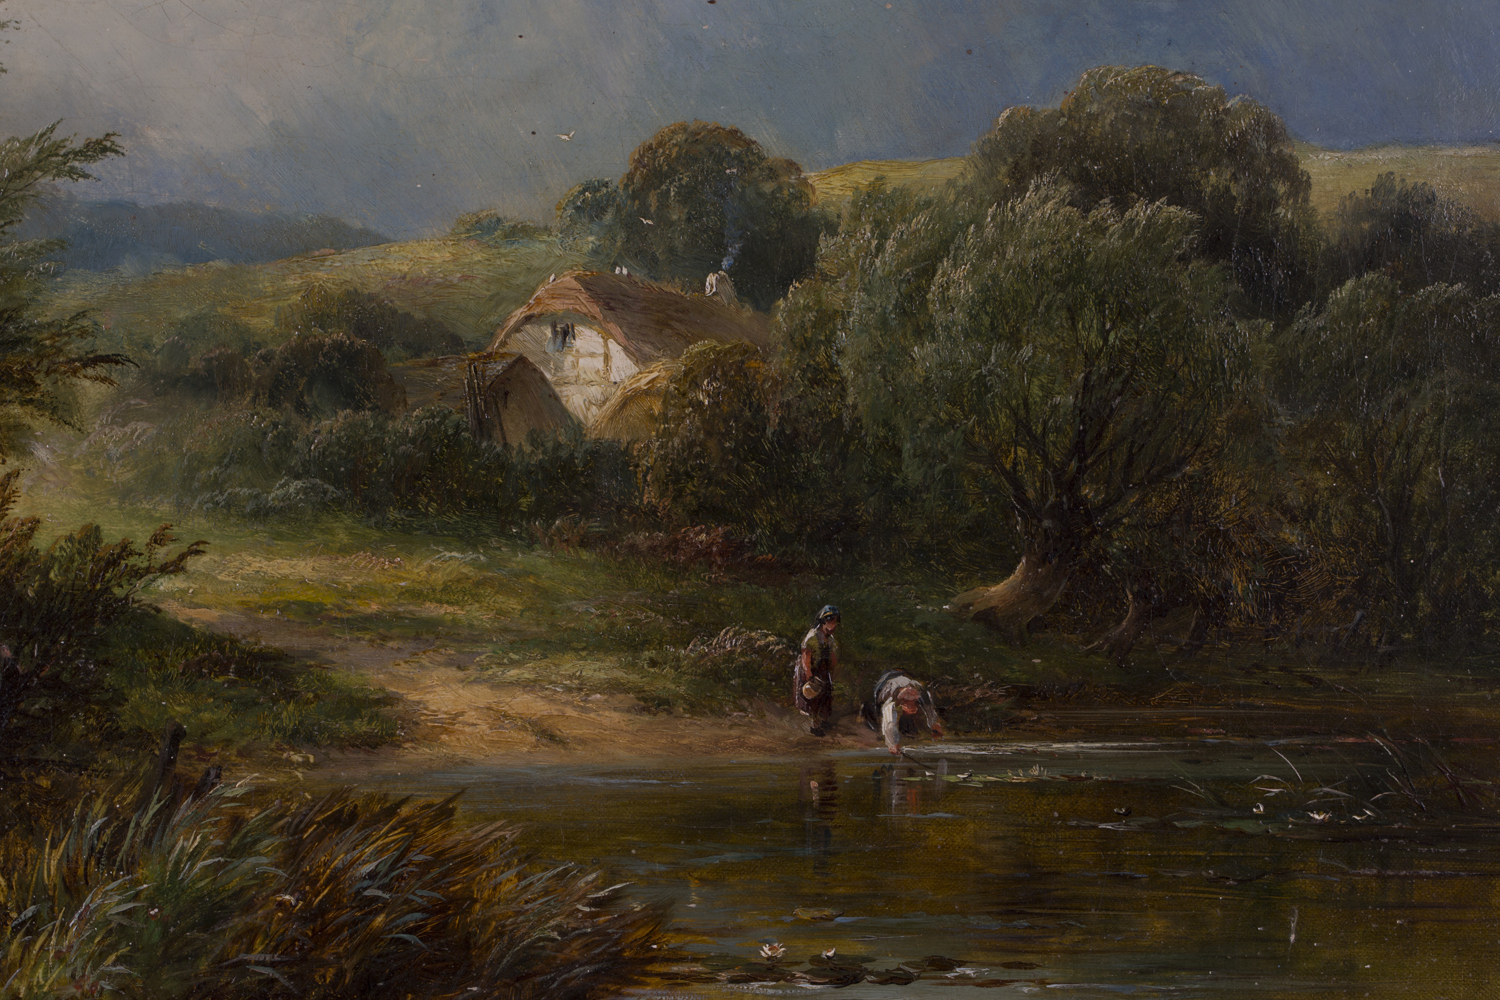 Lot 28 - George Turner - 'Scene nr Ingleby', 19th century oil on canvas, signed and titled verso, 39.5cm x